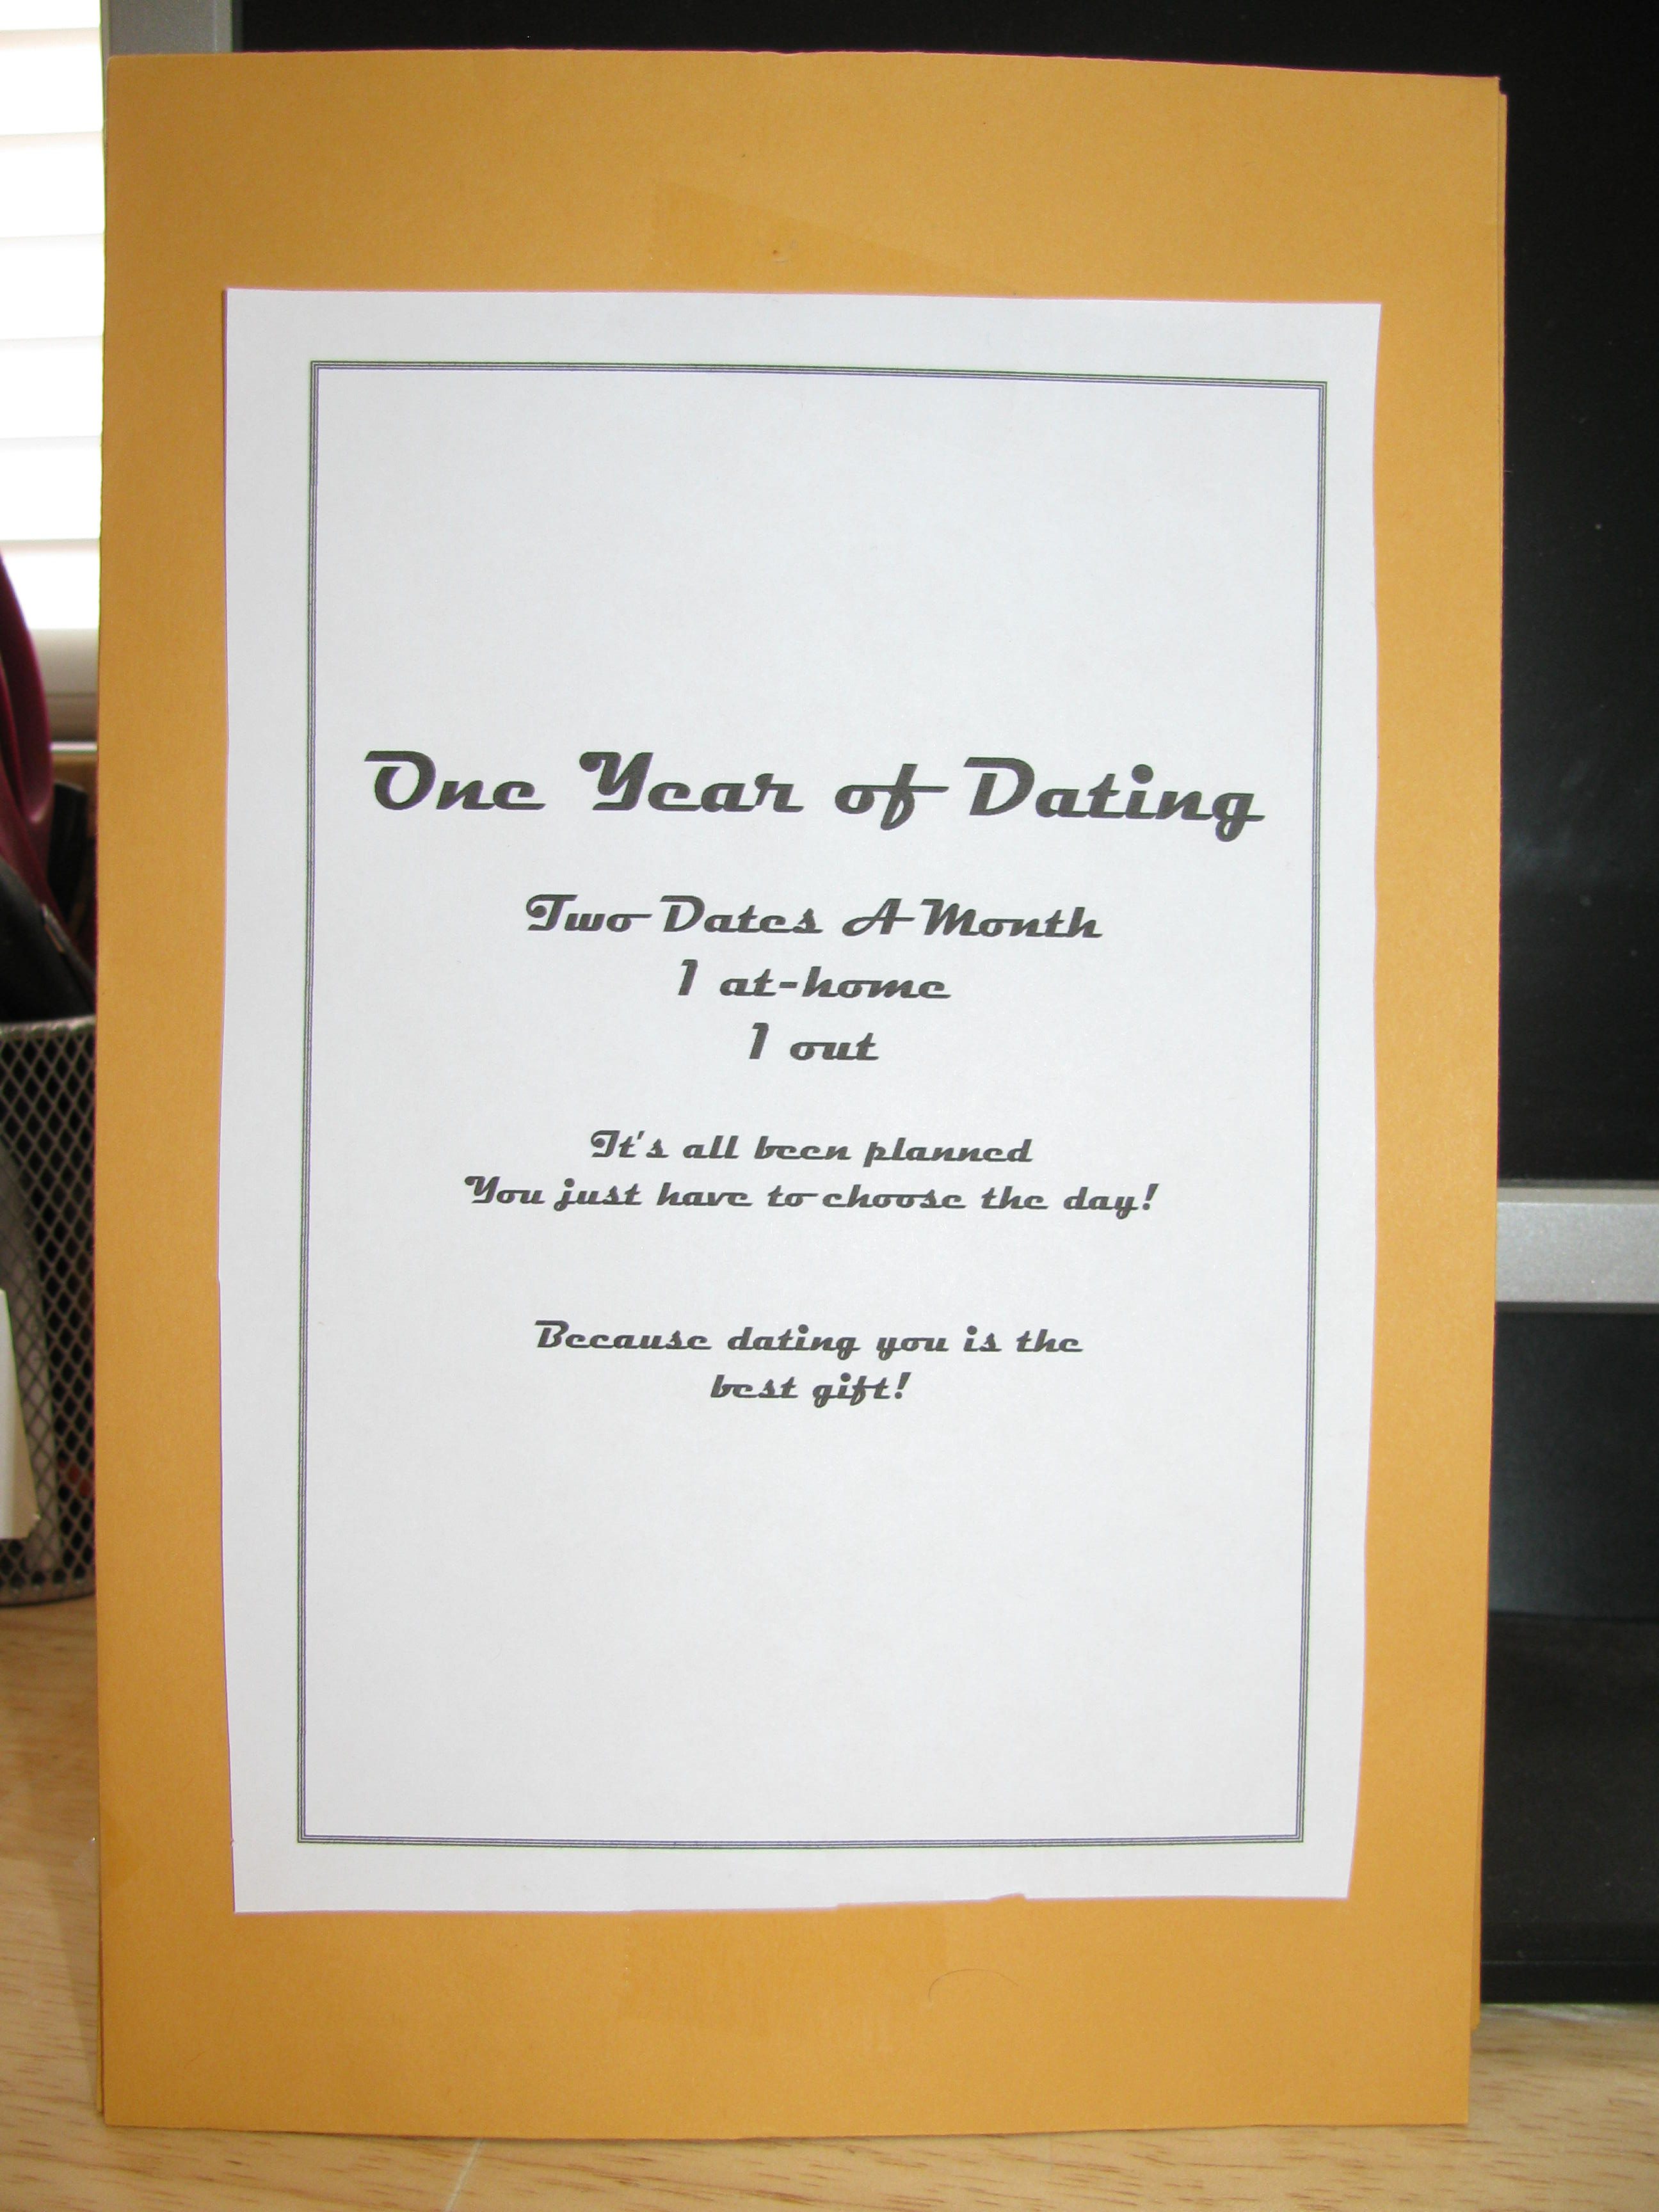 dating for one year gift ideas